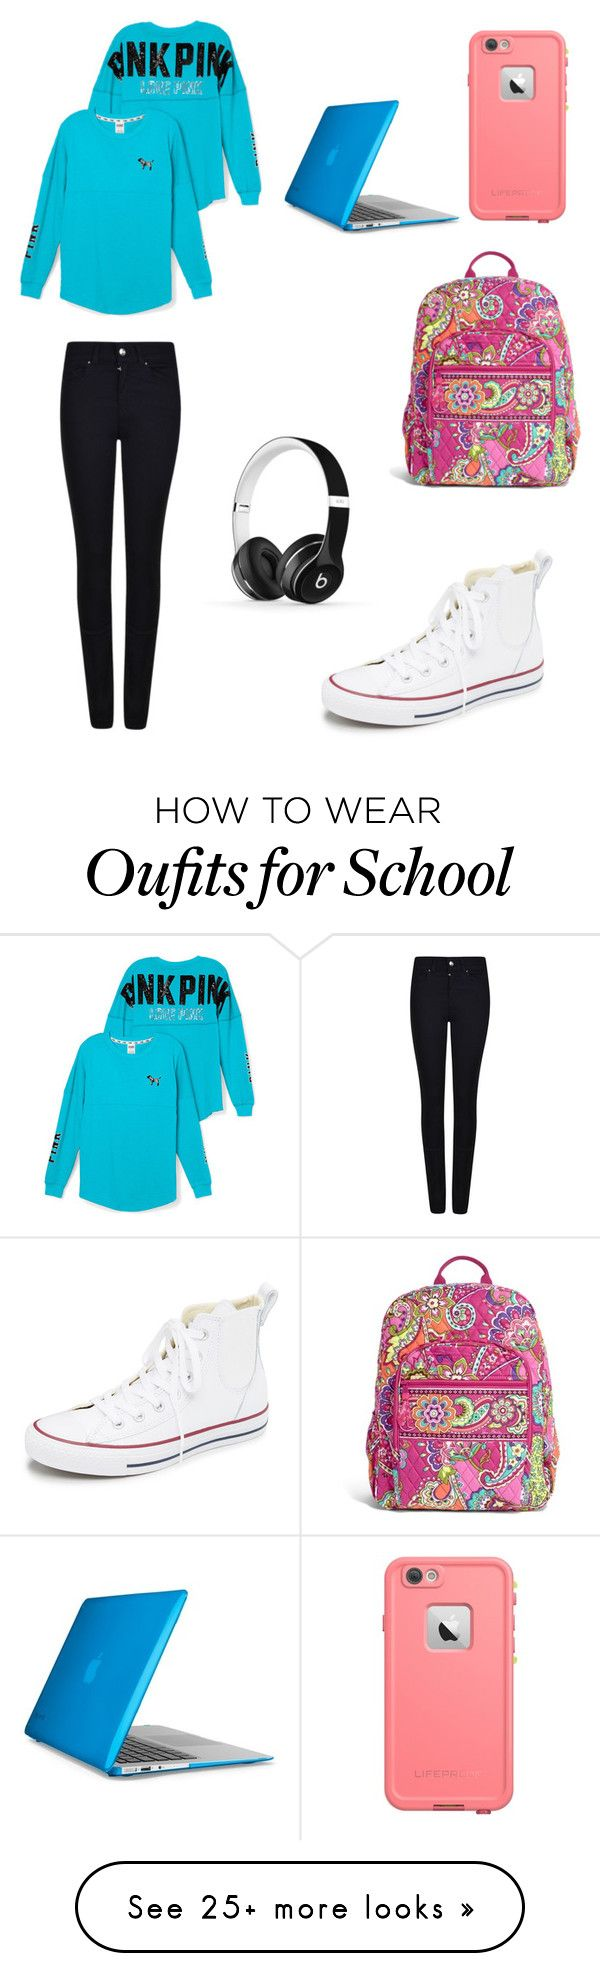 """School"" by mckinley2004 on Polyvore featuring Victoria's Secret PINK, Giorgio Armani, Converse, Vera Bradley, Speck and Beats by Dr. Dre"